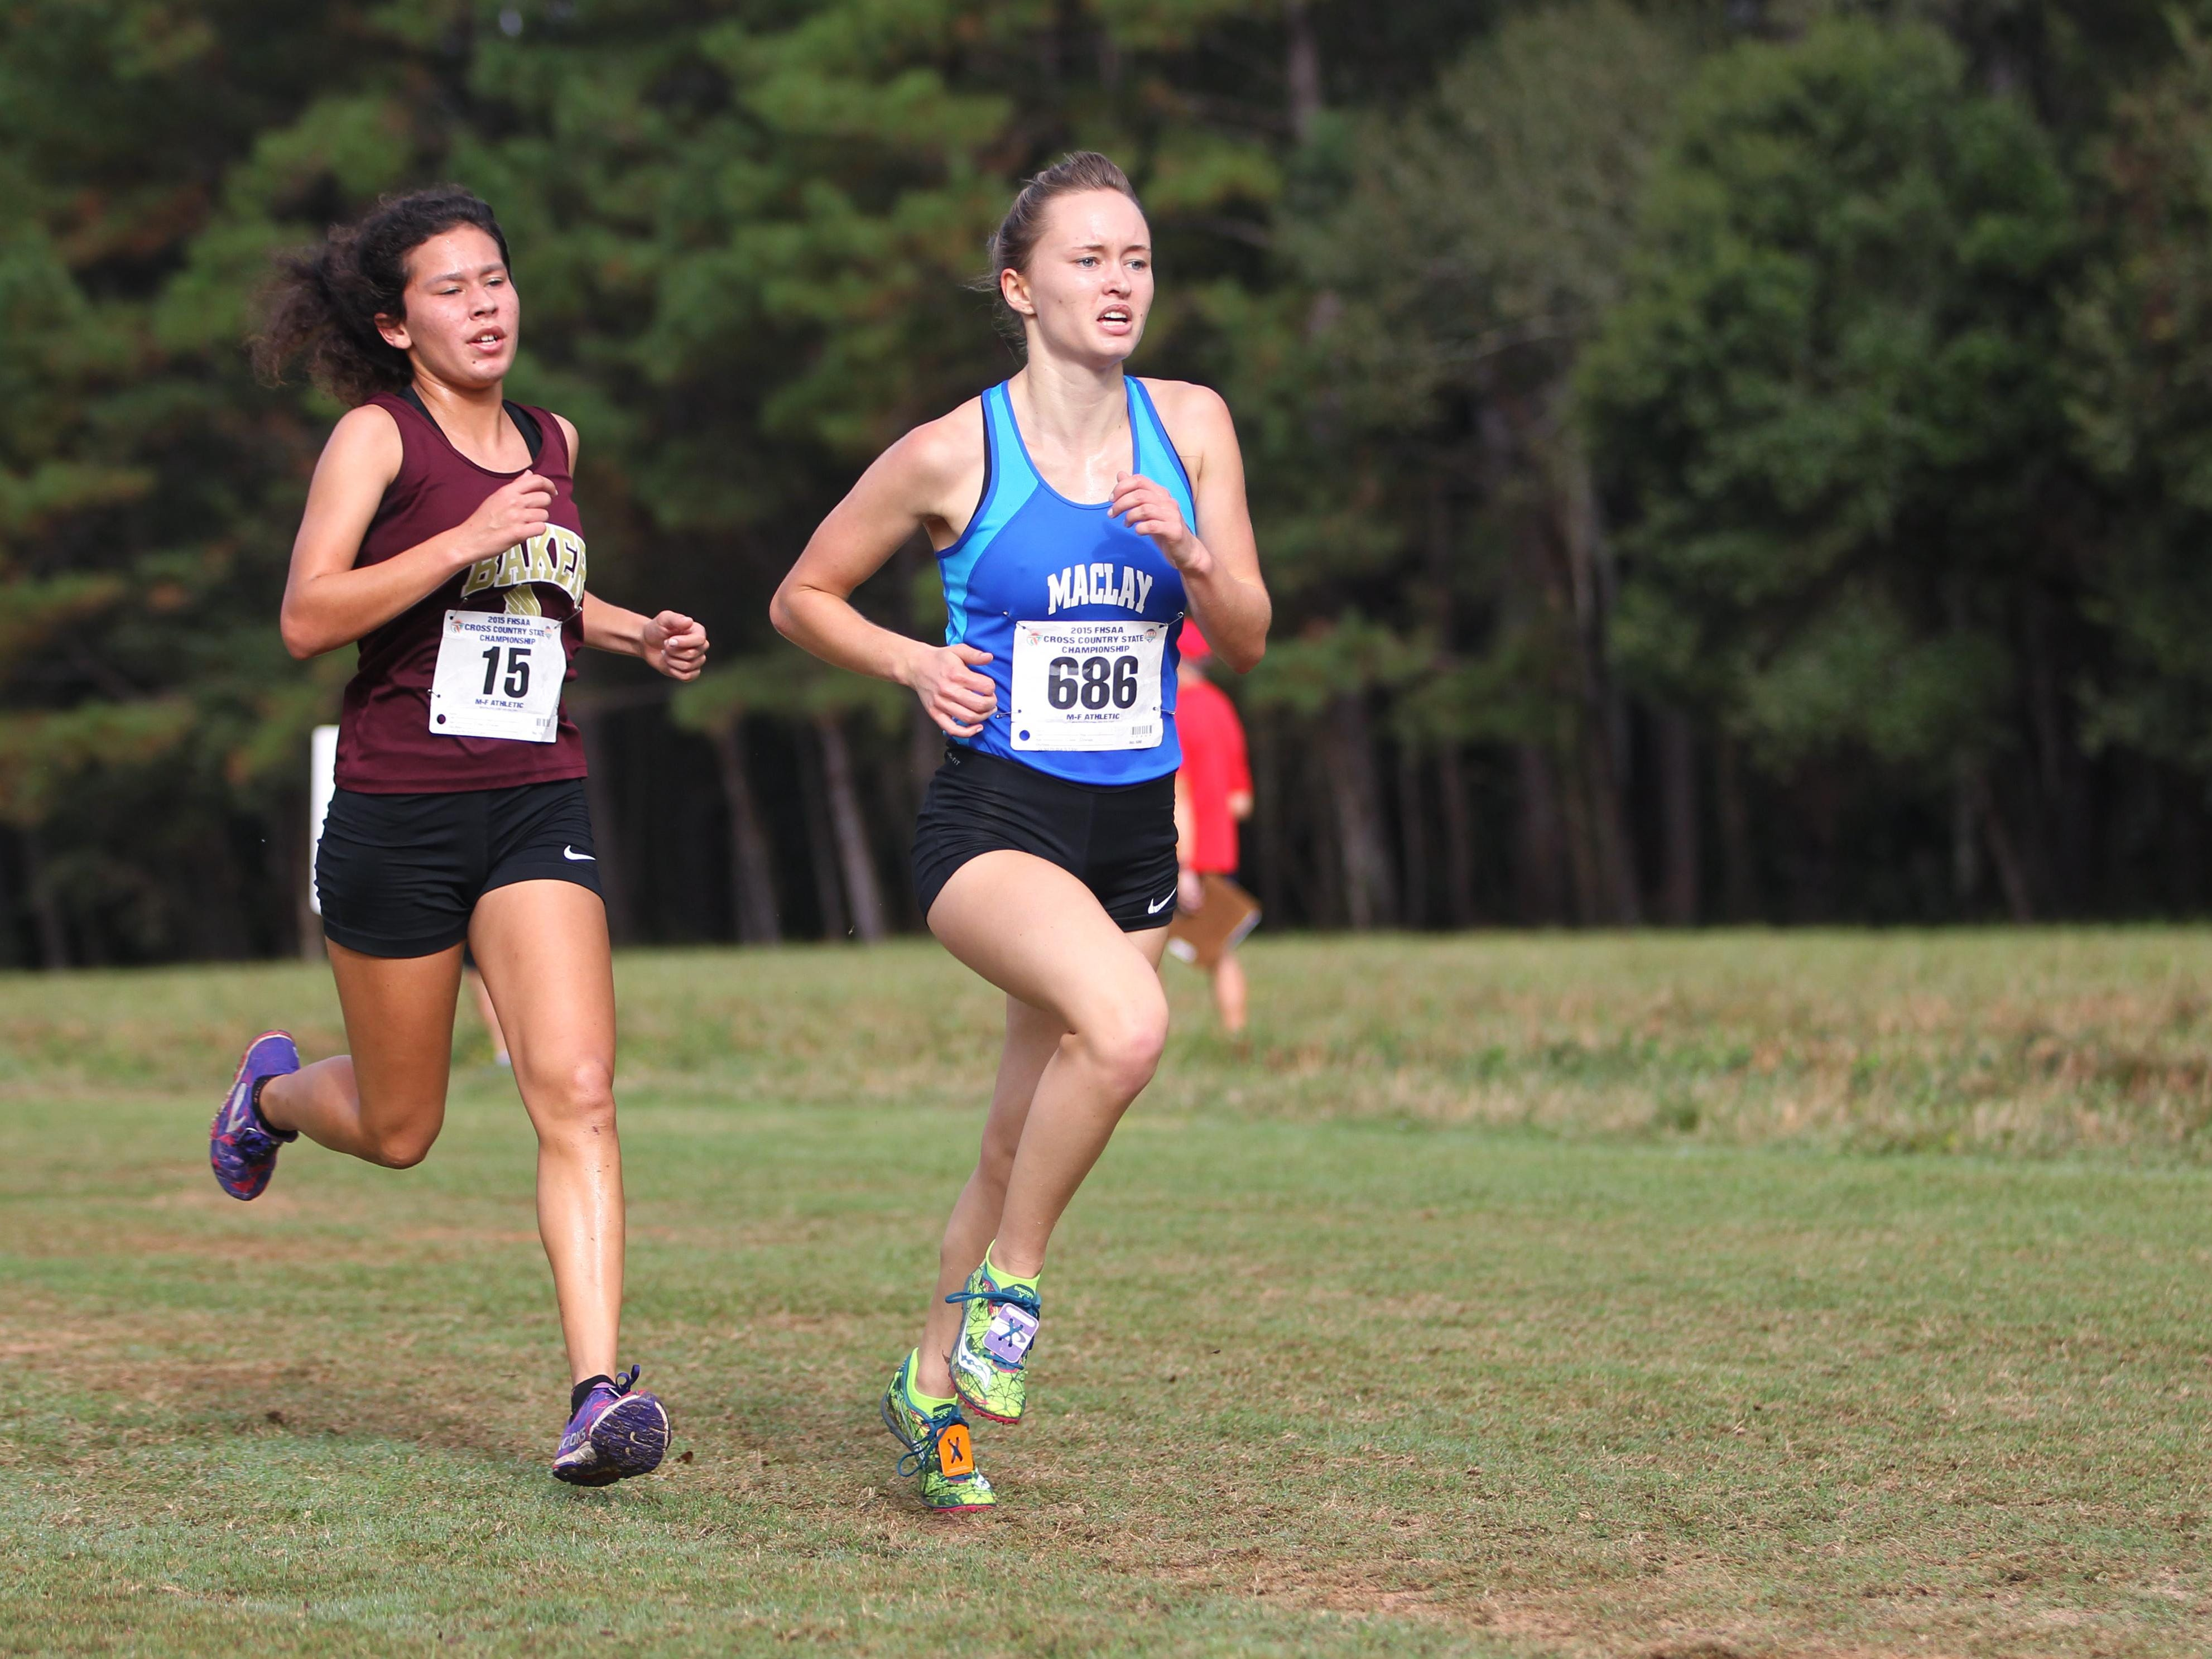 Maclay junior Caroline Willis (right) battles Baker freshman Maya Espinosa during Saturday's 1A race at the FHSAA cross country finals at Apalachee Regional Park. Willis finished in the top 10 and the Marauders were the 1A runner-up.